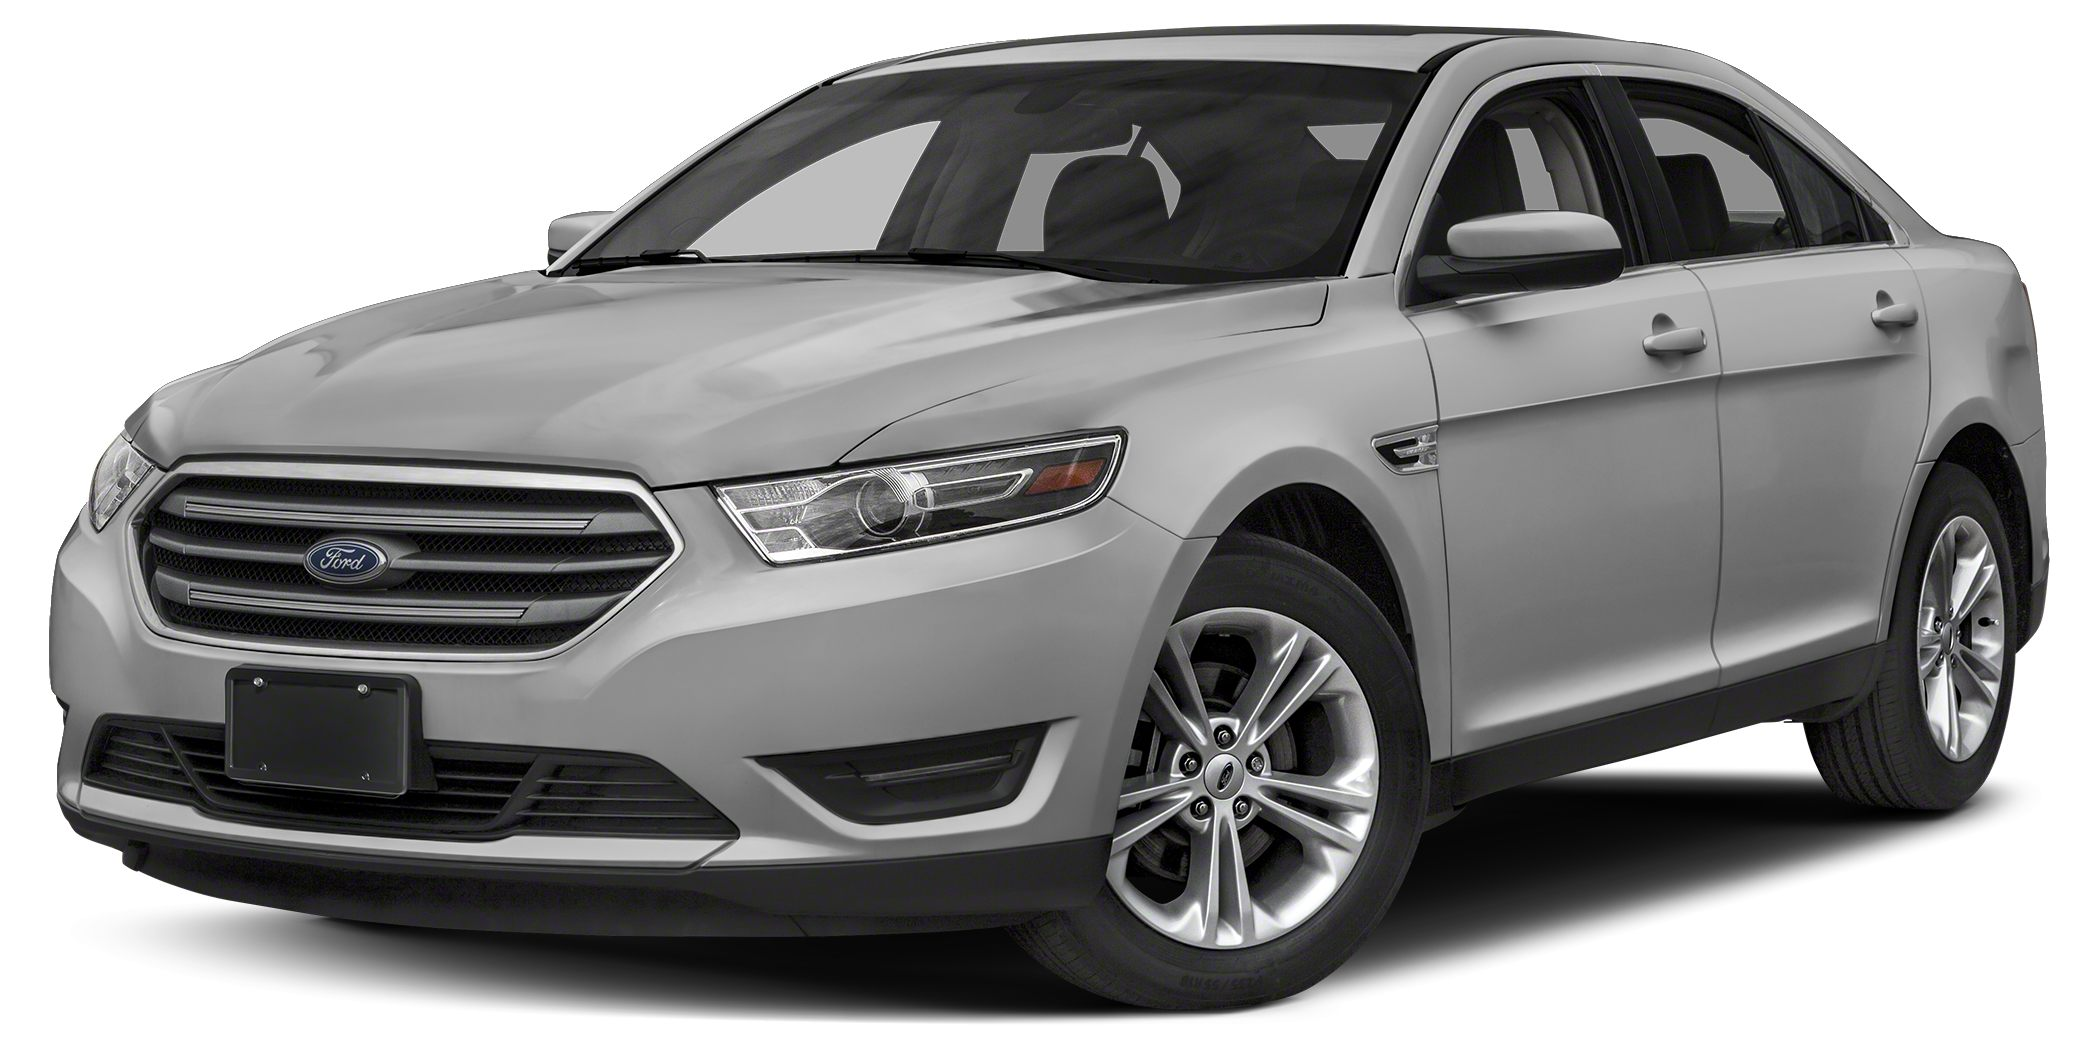 2017 Ford Taurus SE The Ford Taurus has aggressive front and rear styling that signals a high leve